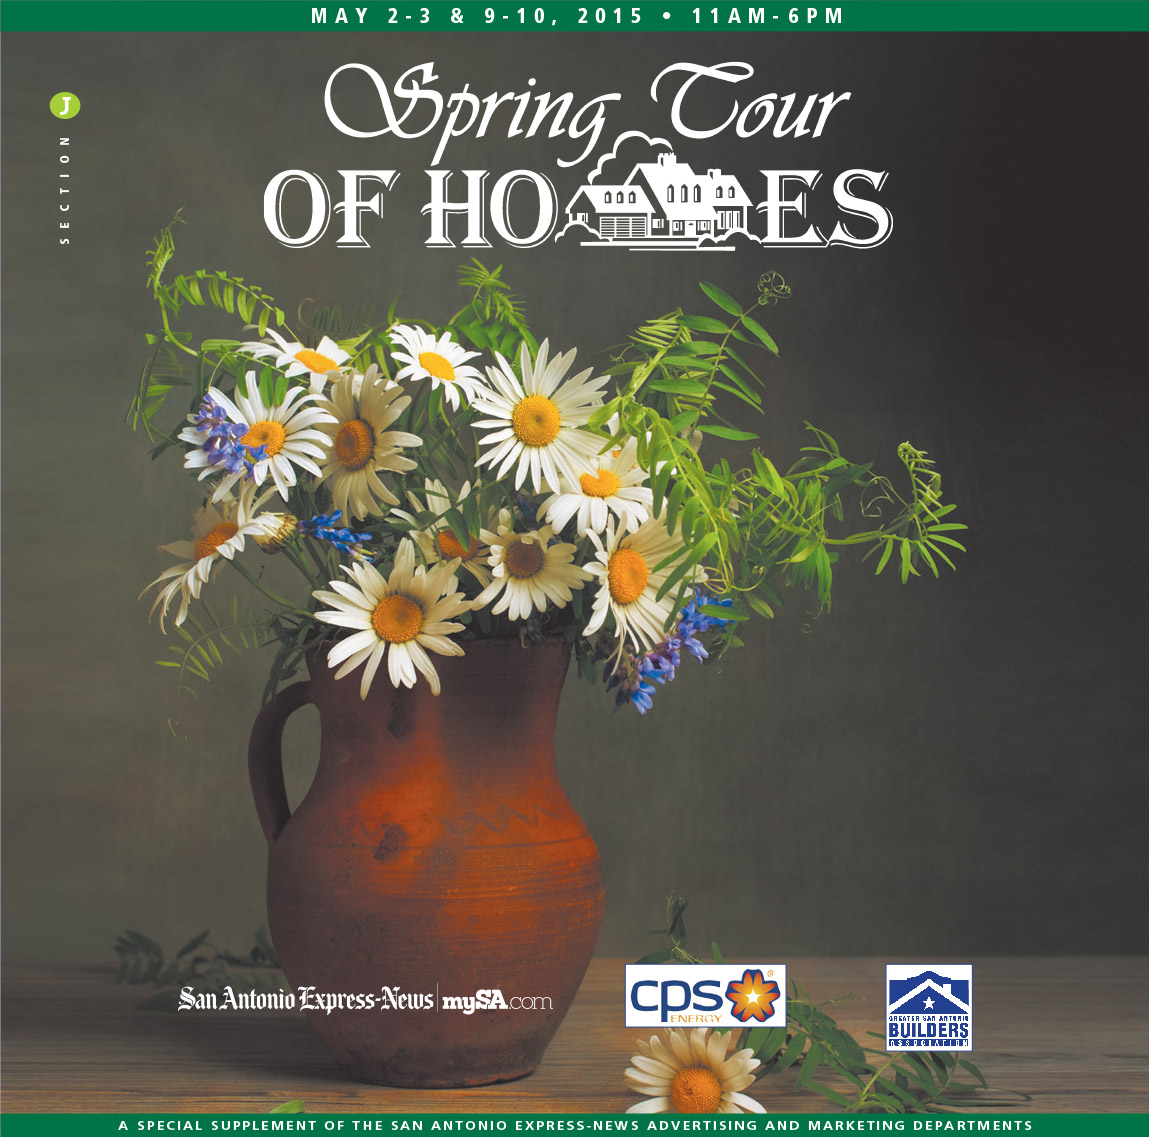 2015 Spring Tour of Homes - San Antonio & Boerne